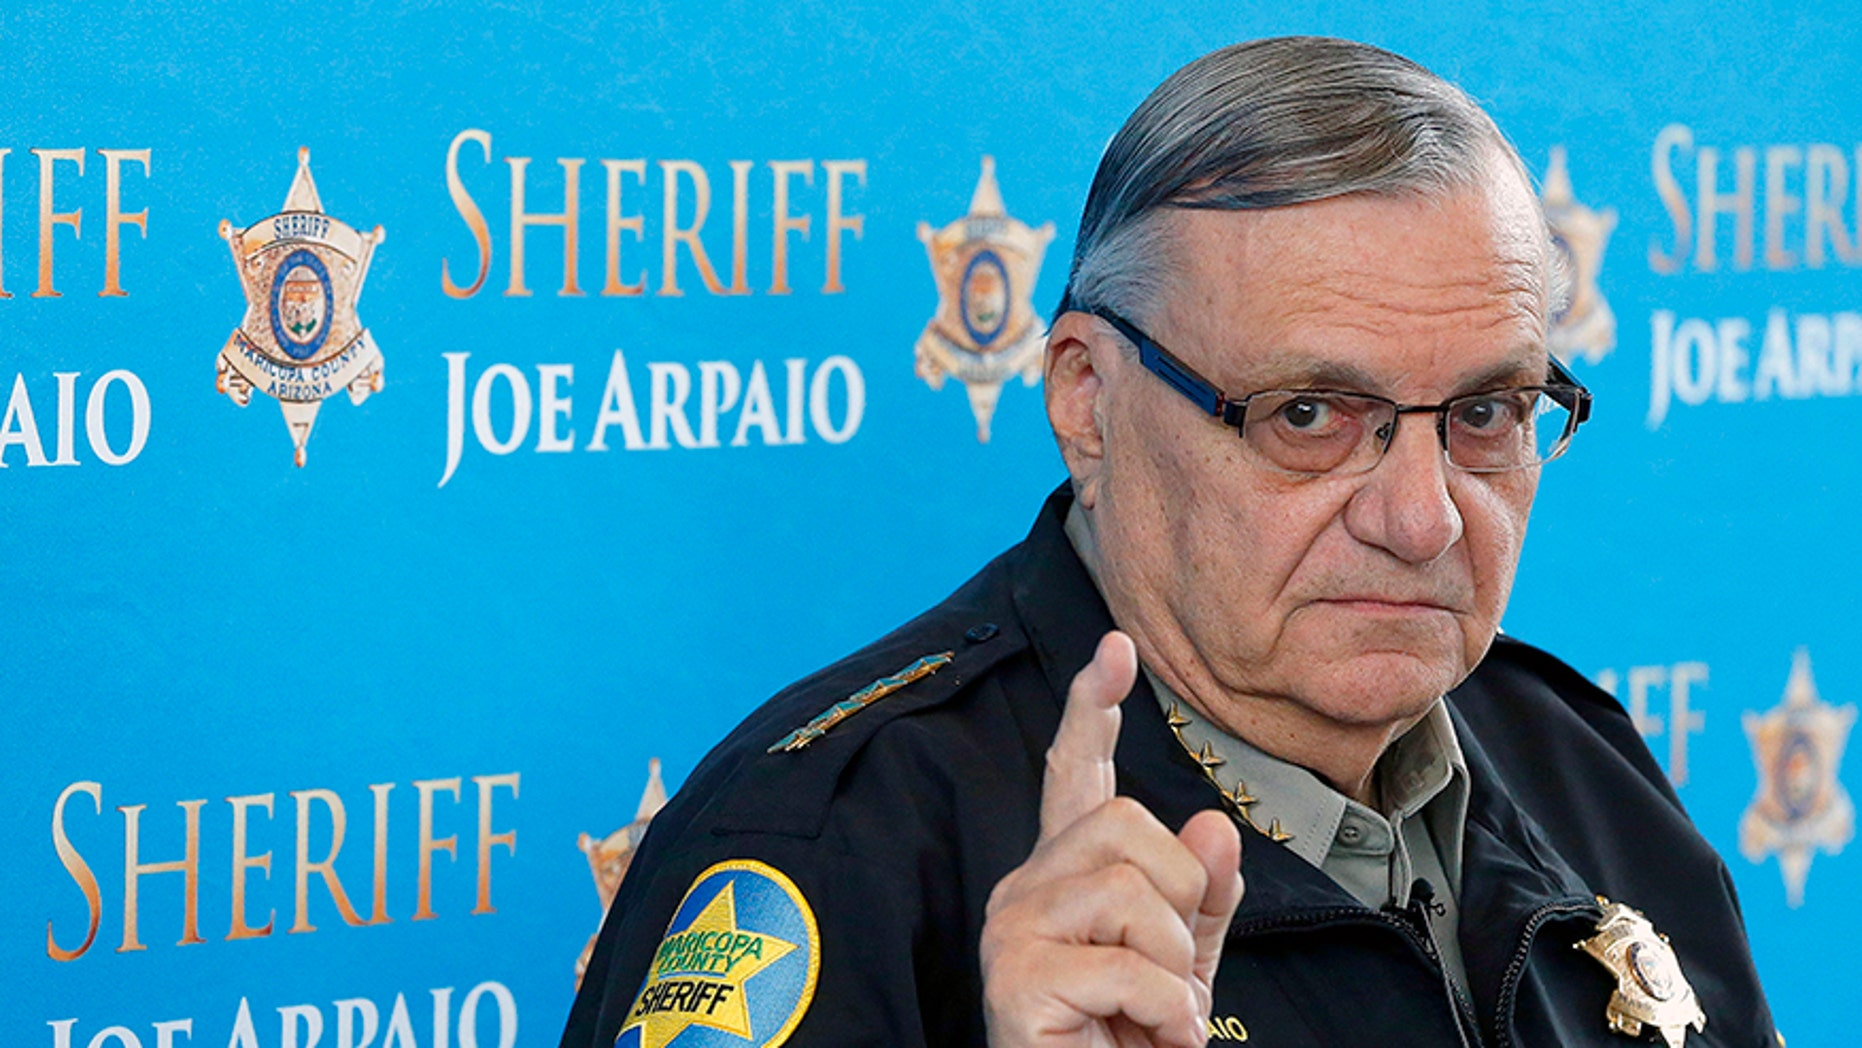 Former Maricopa County Sheriff Joe Arpaio, pictured in 2013, received a pardon from President Trump last year.